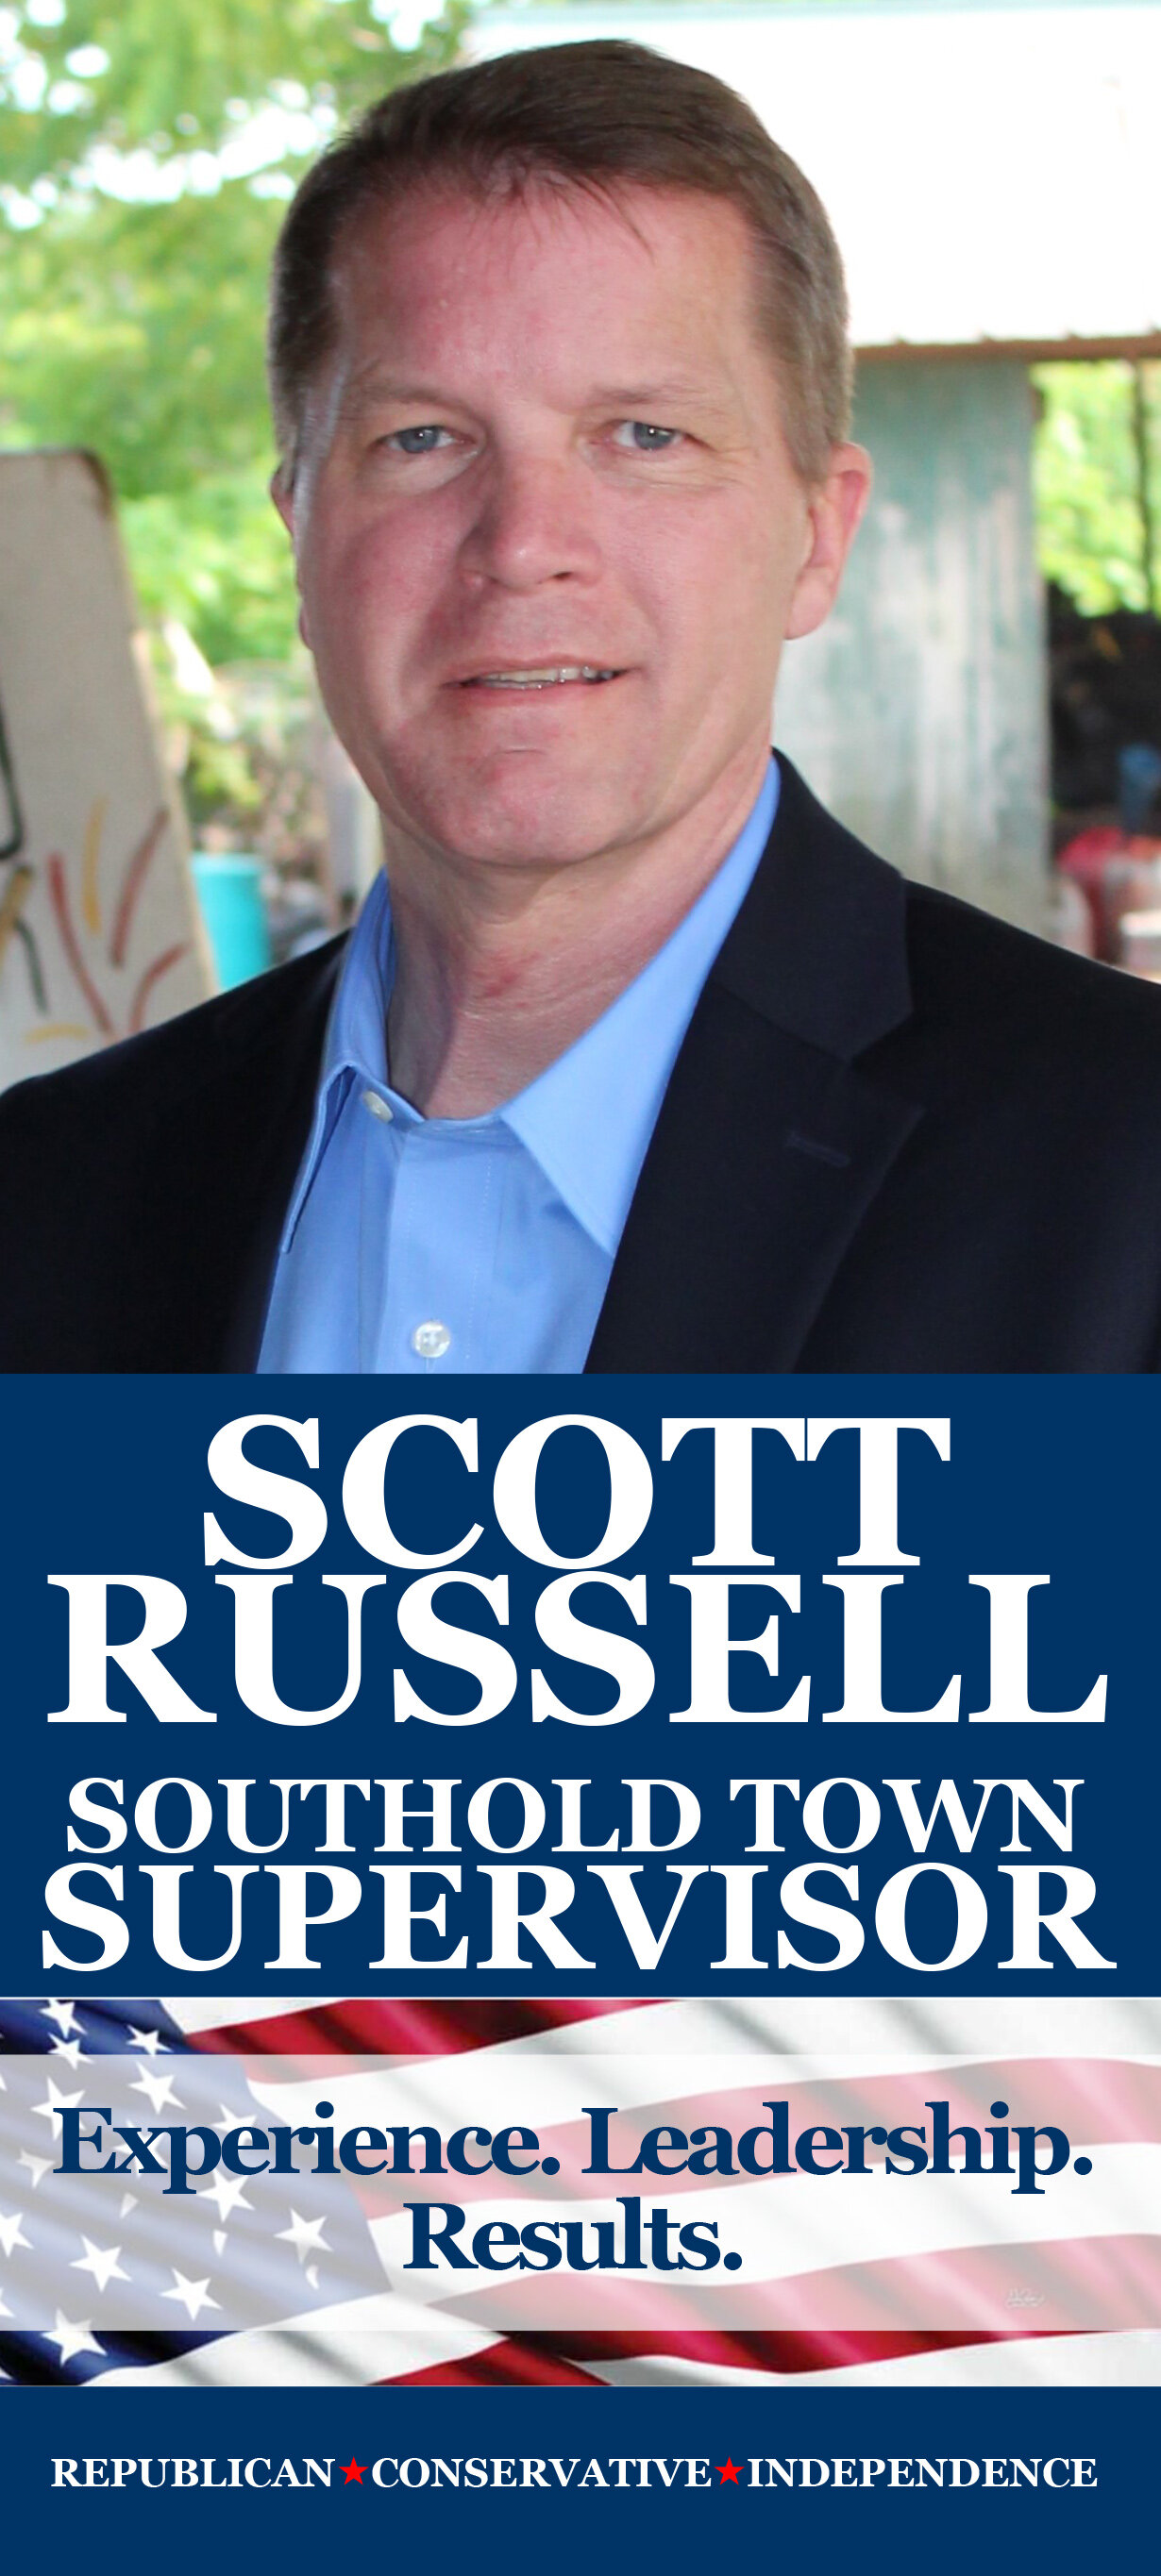 Russell2019C_FRONT.jpg